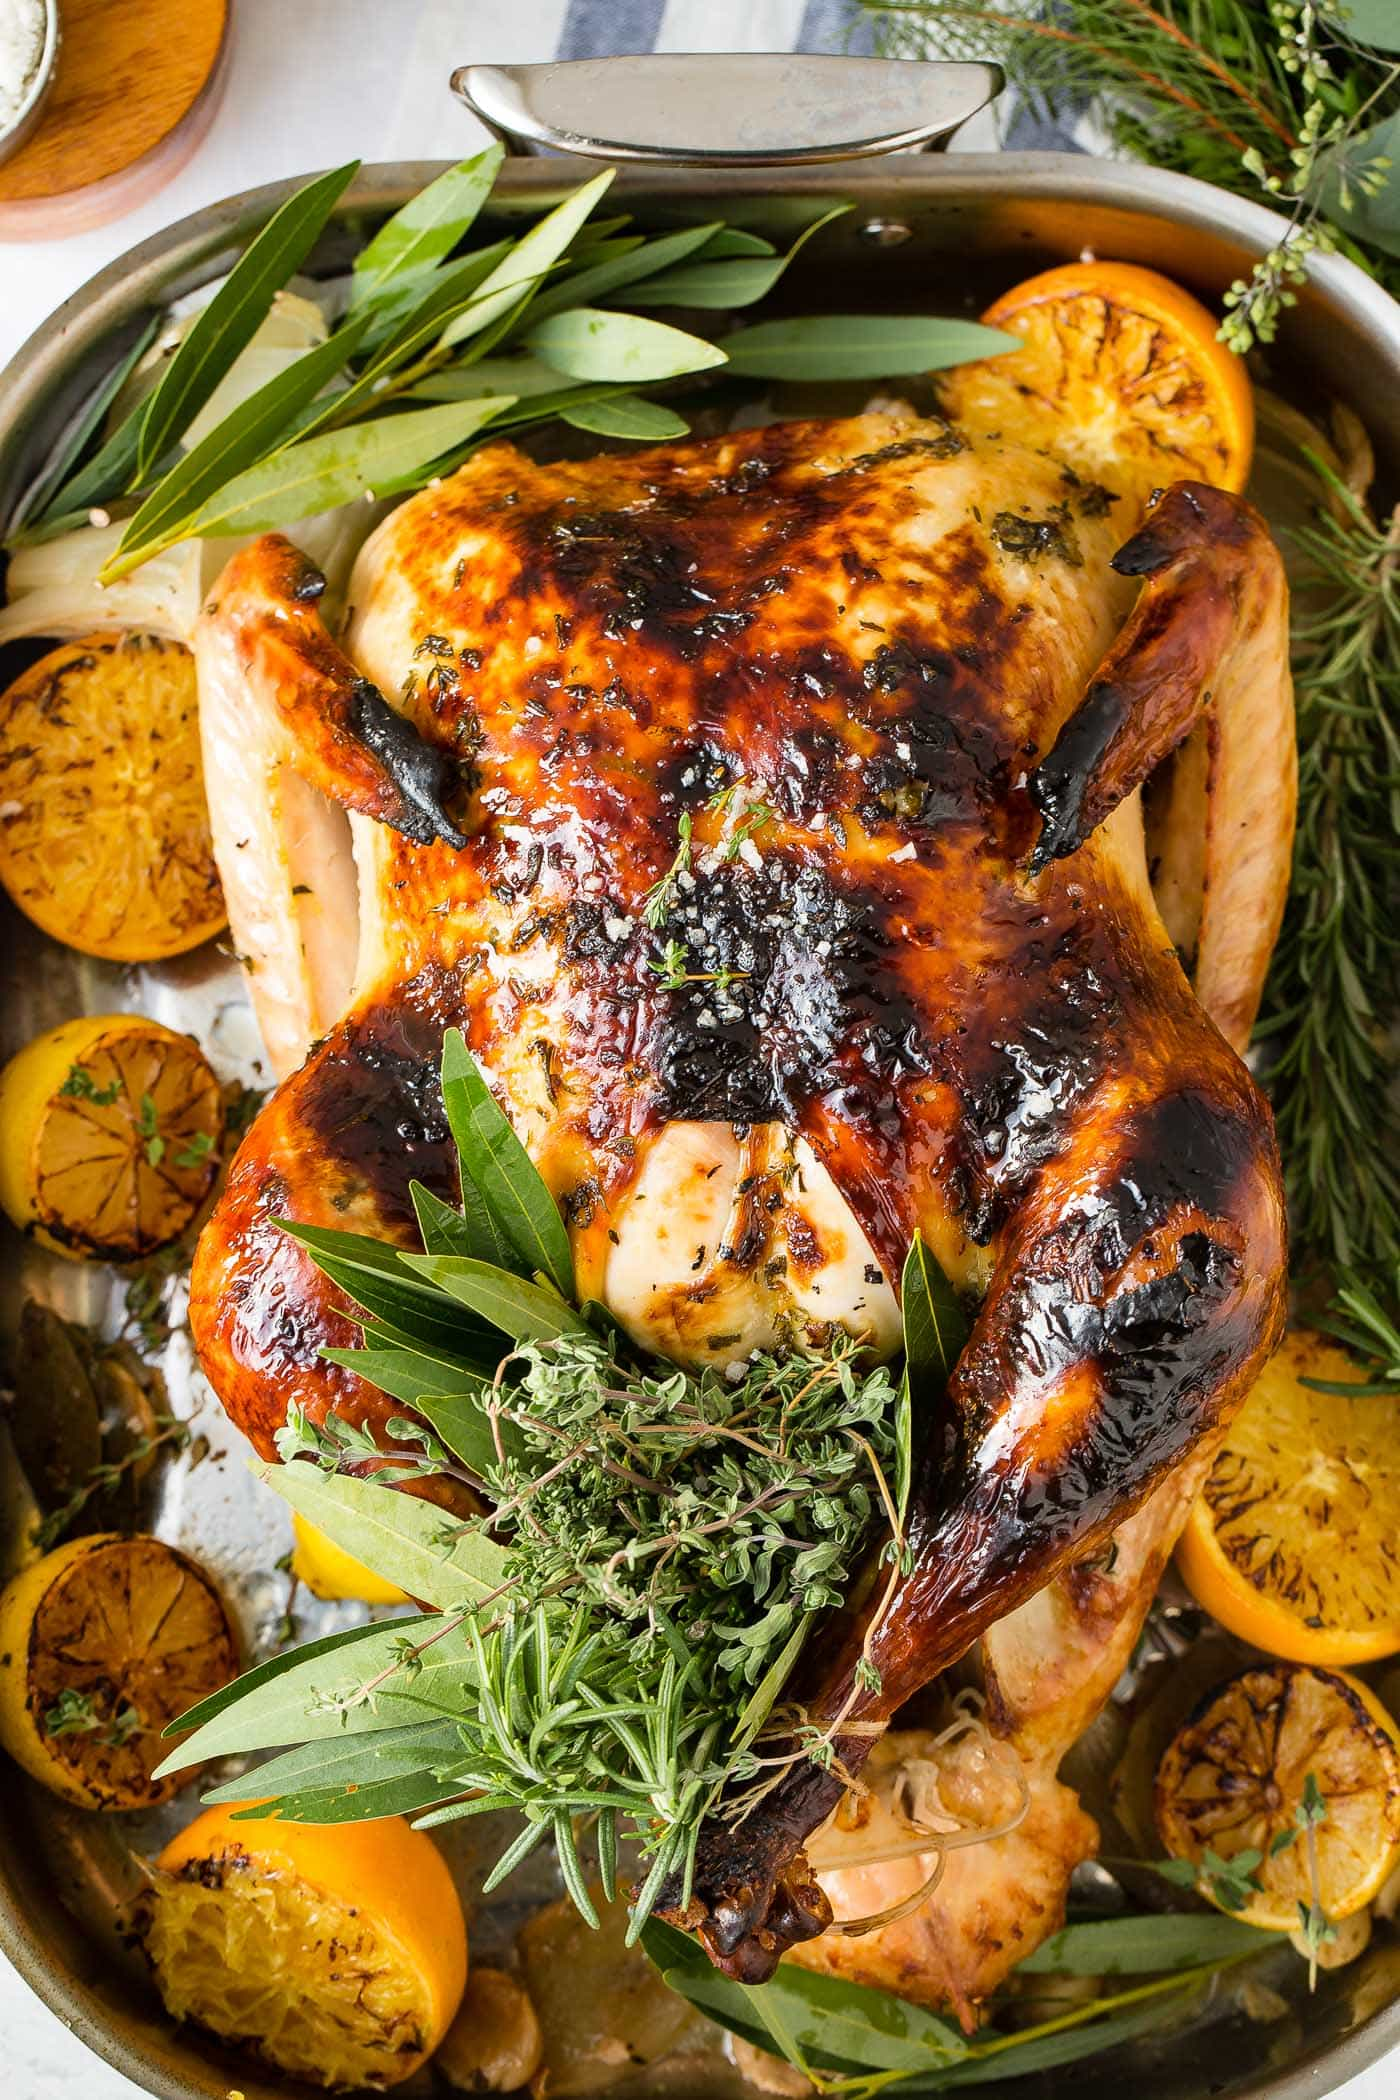 A photo of a whole roasted turkey on a platter surrounded by roasted lemon halves and bunches of fresh herbs.